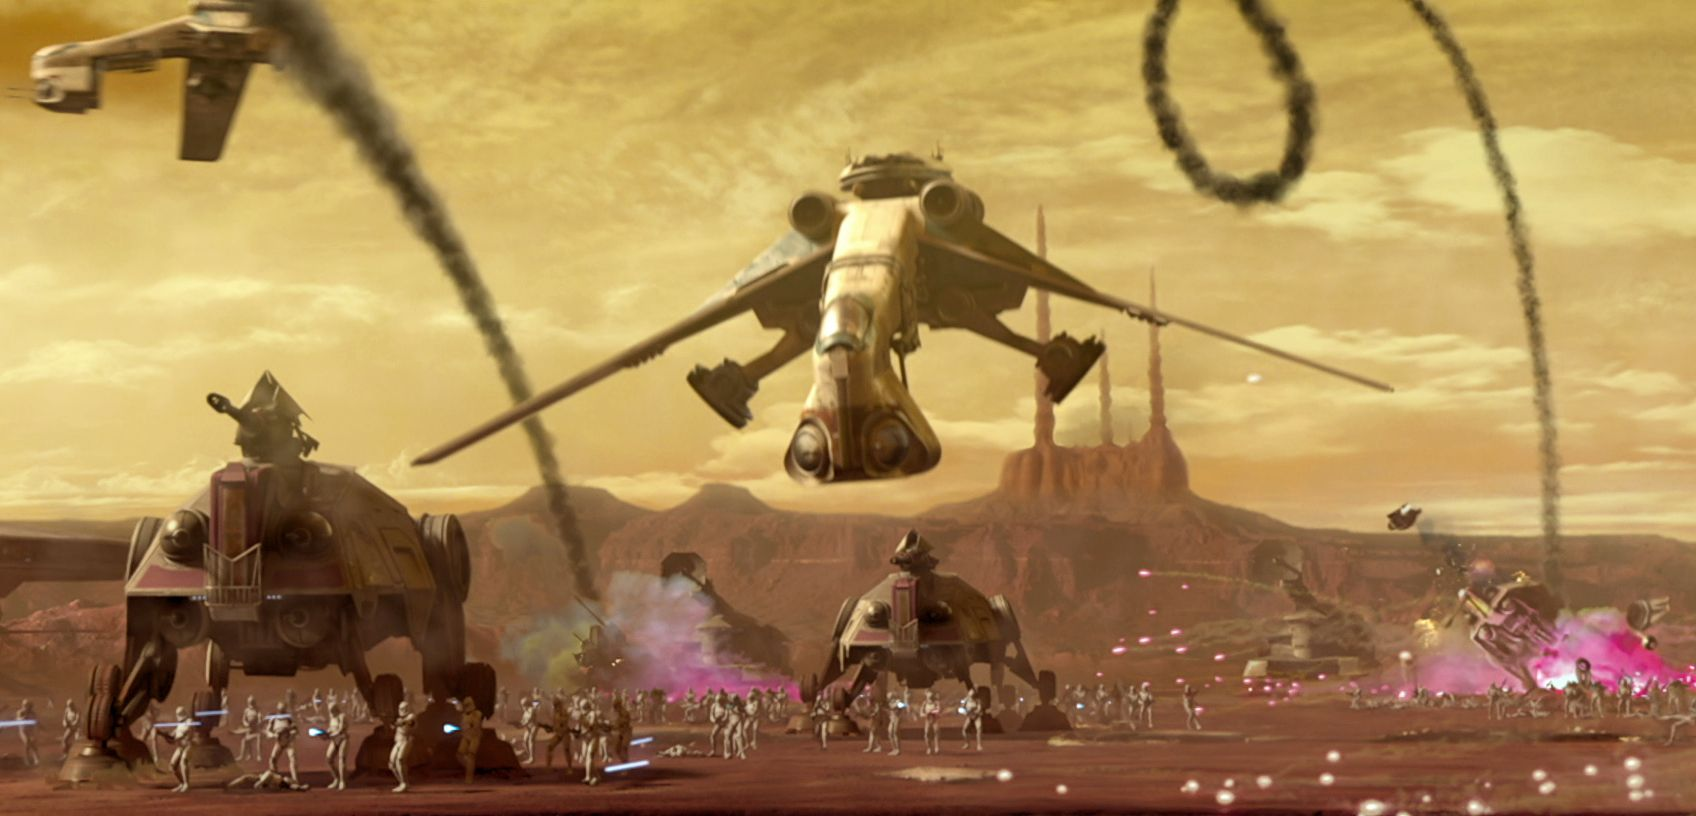 Low Altitude Assault Transport Carrier Star Wars Pictures Star Wars Images Battle Of Geonosis